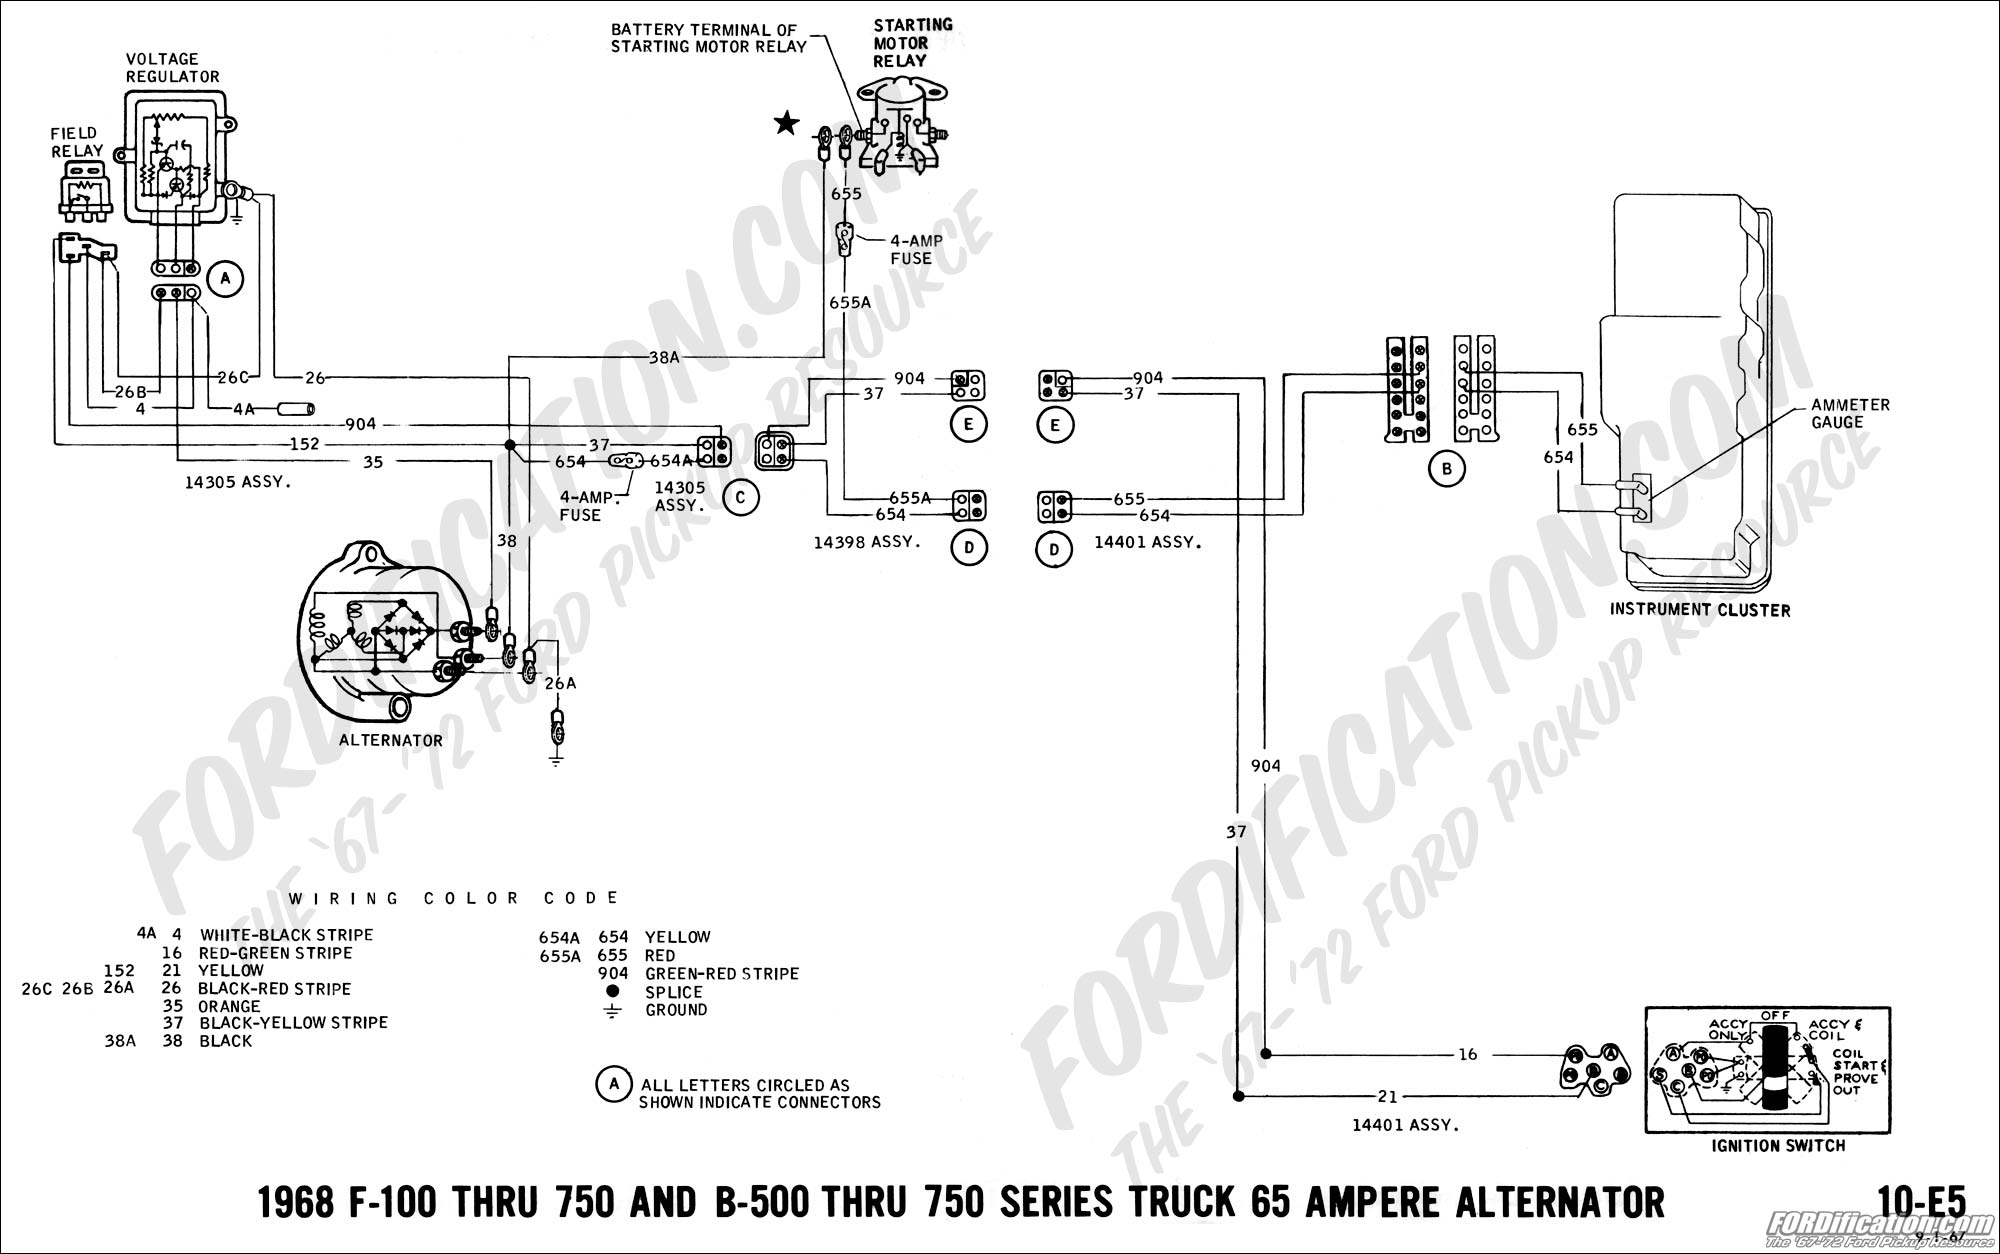 ford truck technical drawings and schematics section h wiring 1980 Club Car Wiring Diagram 1968 f 100 thru f 750 and b 500 thru f 750 65 amp alternator